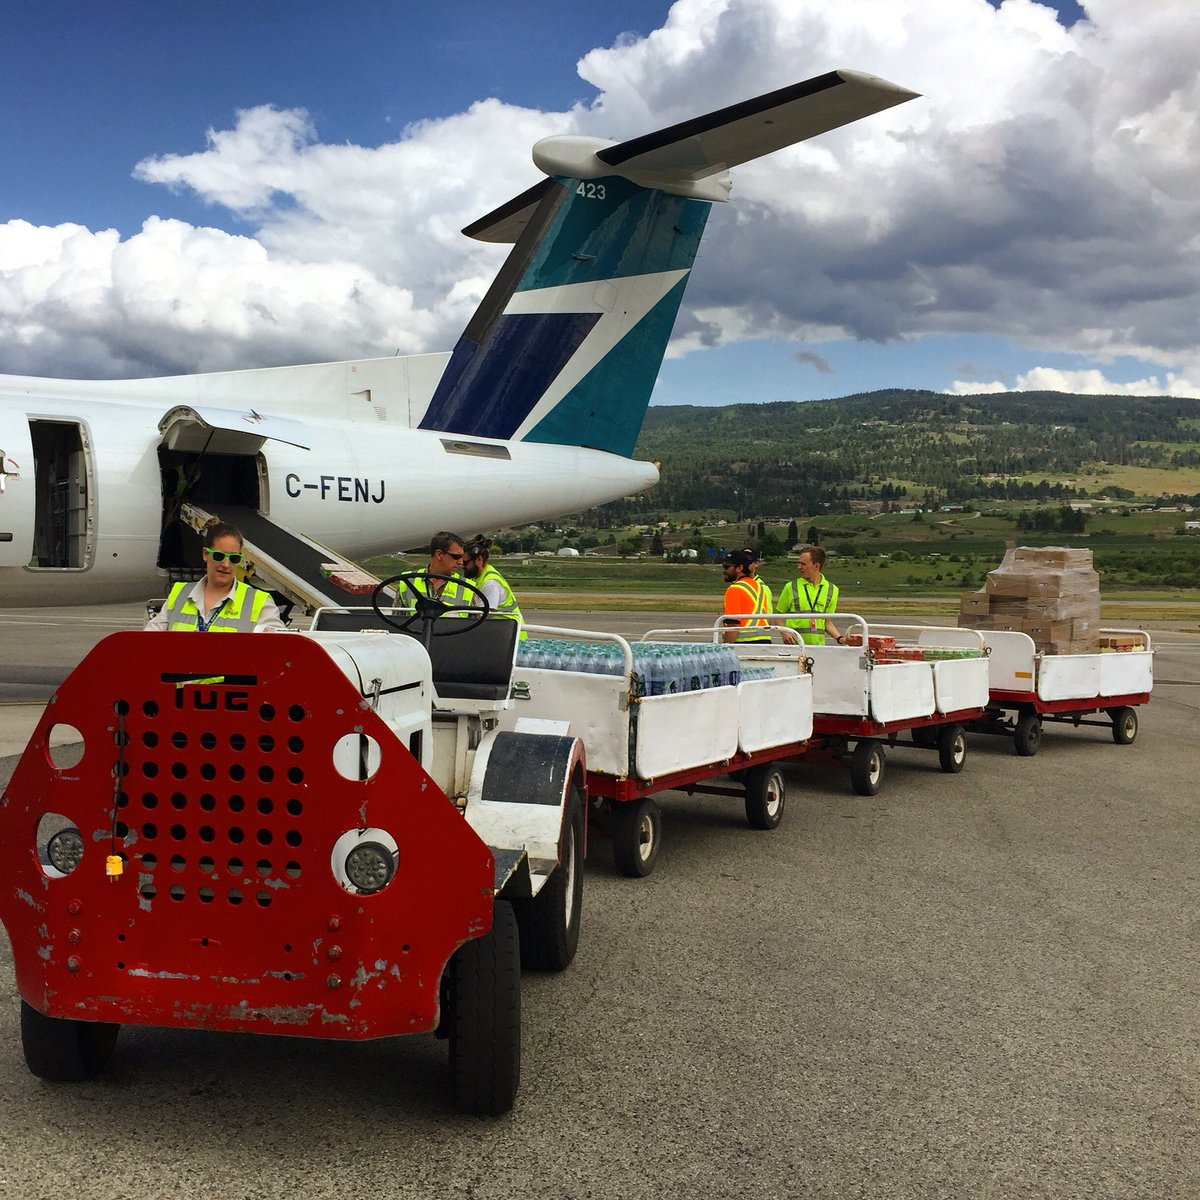 Thanks to our community, crews are currently loading a @WestJet plane with supplies for residents of #FortMcMurray! https://t.co/eaDqk01qxe